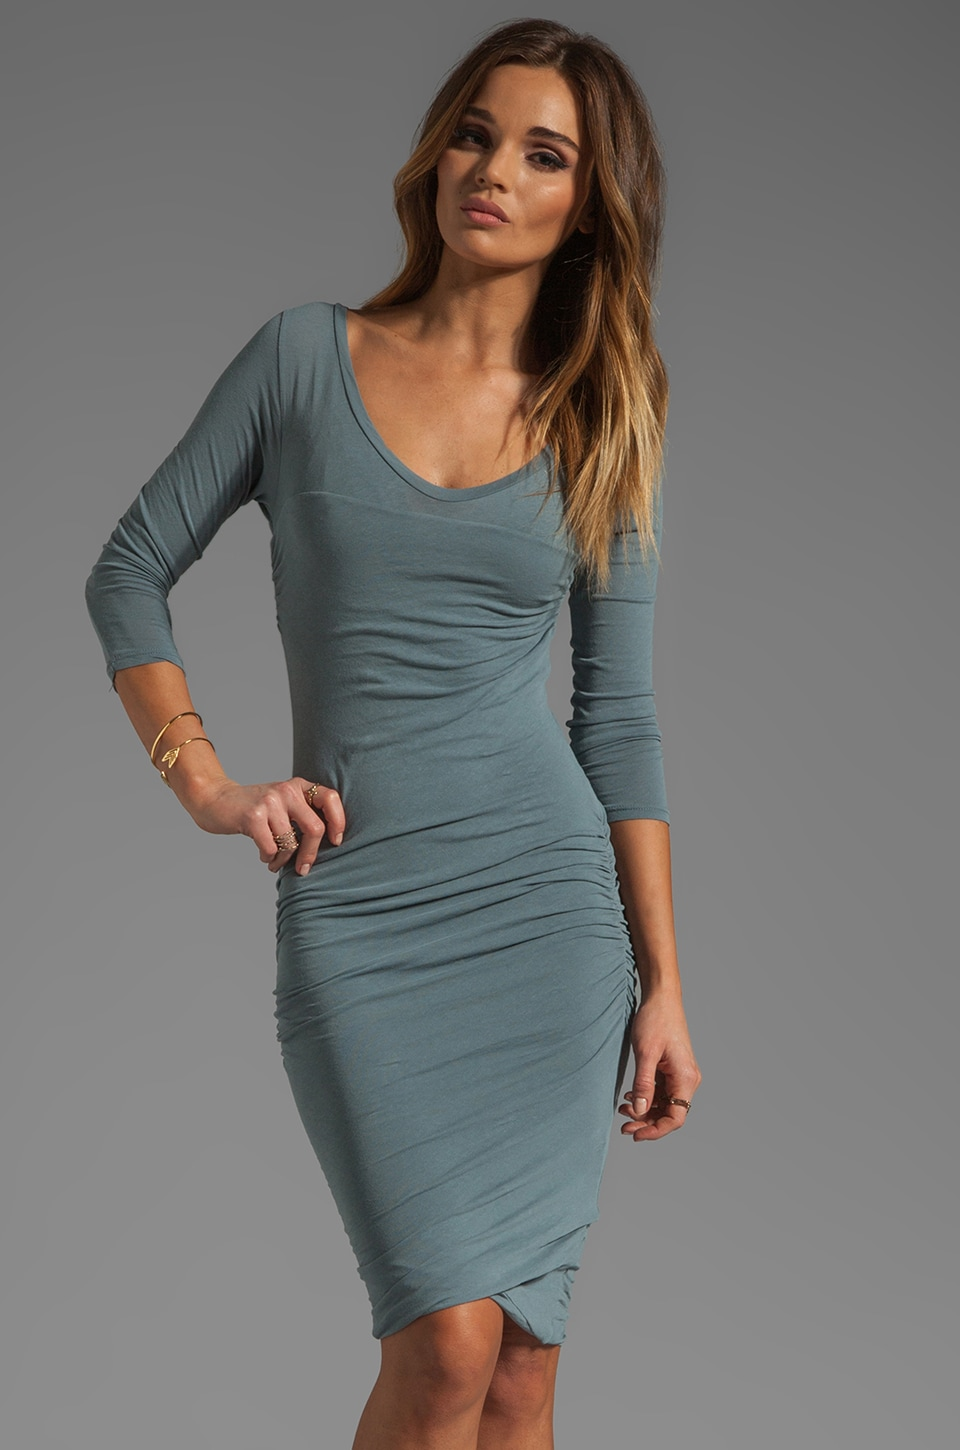 James Perse Soft Multi Layer Dress in Tempest